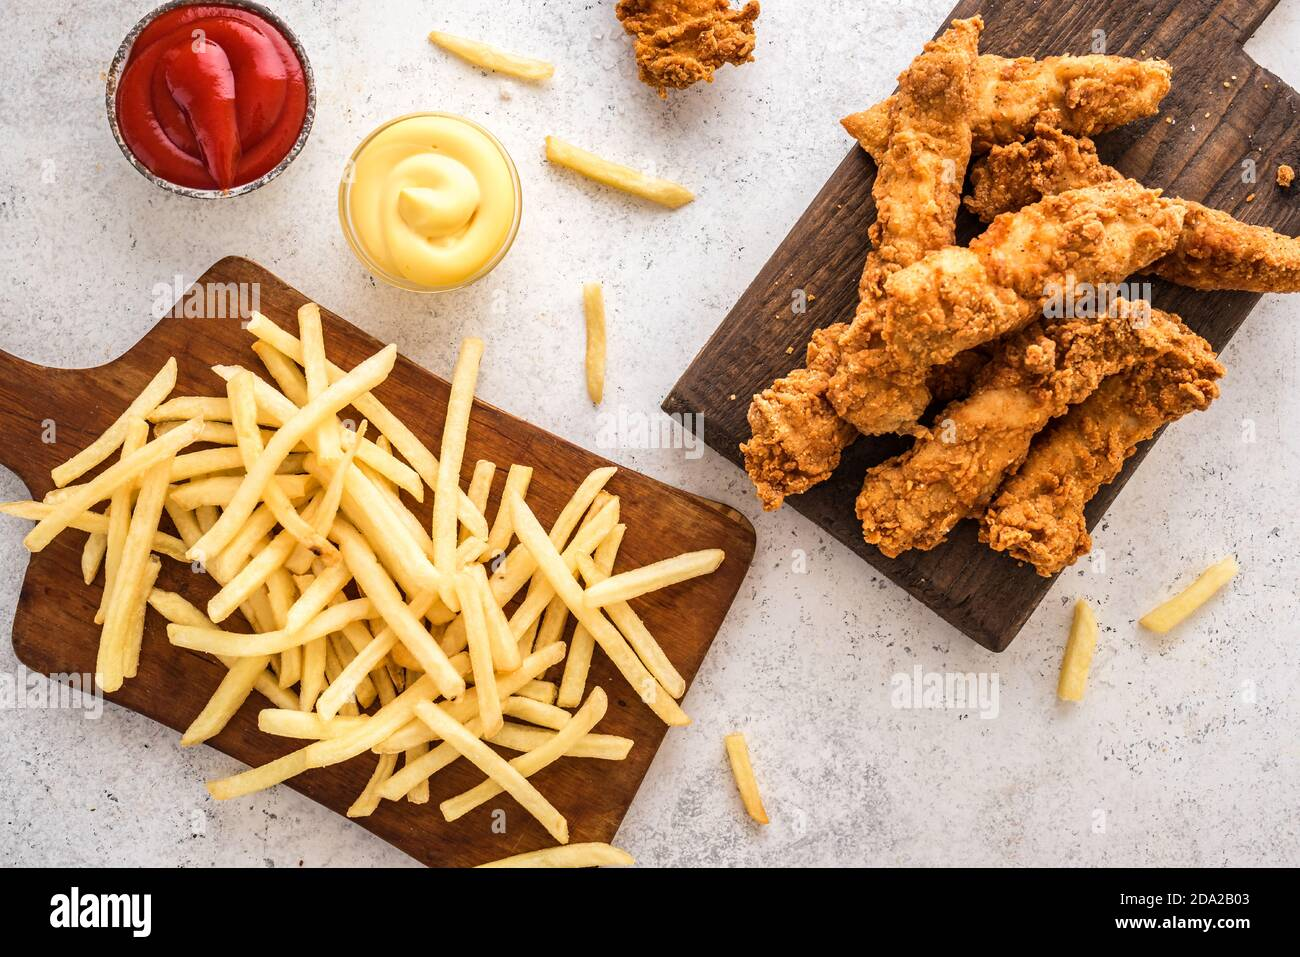 Fish and chips. Deep fried fish filet and with french fries on white background with sauces. Traditional british street food. Stock Photo